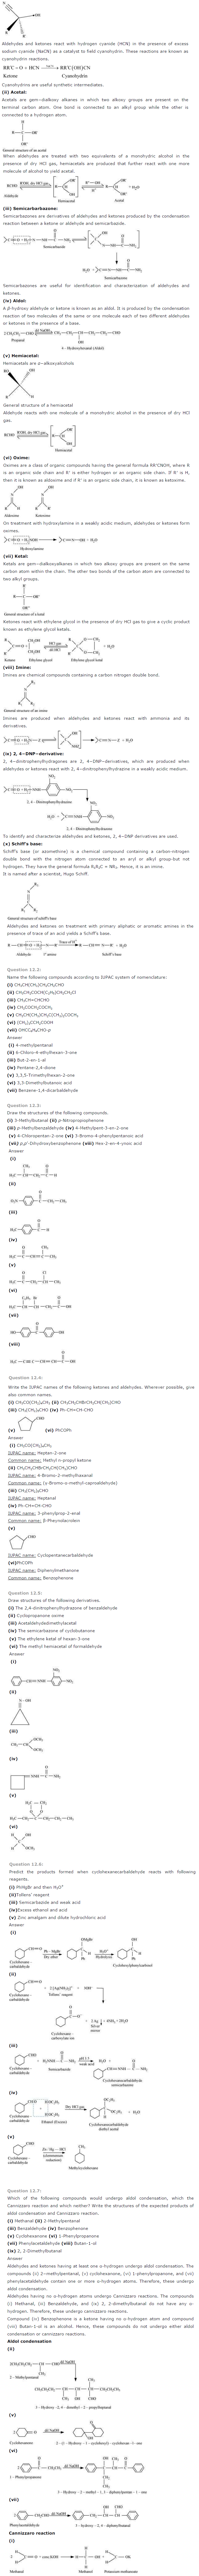 NCERT Solutions Class 12 Chemistry Chapter 12 Aldehydes Ketones